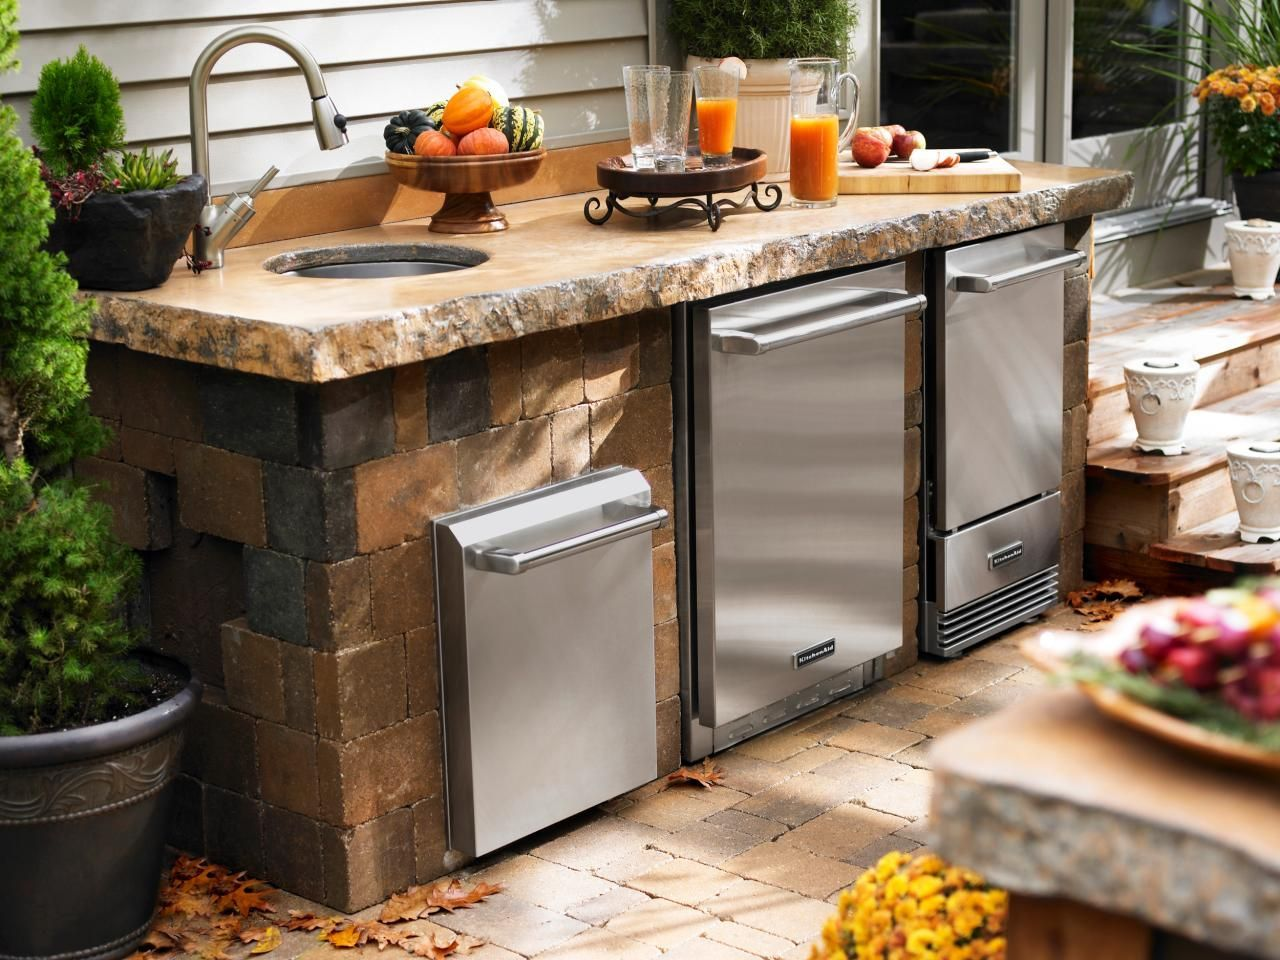 Outdoor Kitchen Ideas on a Budget: Pictures, Tips & Ideas – pickndecor.com/furniture